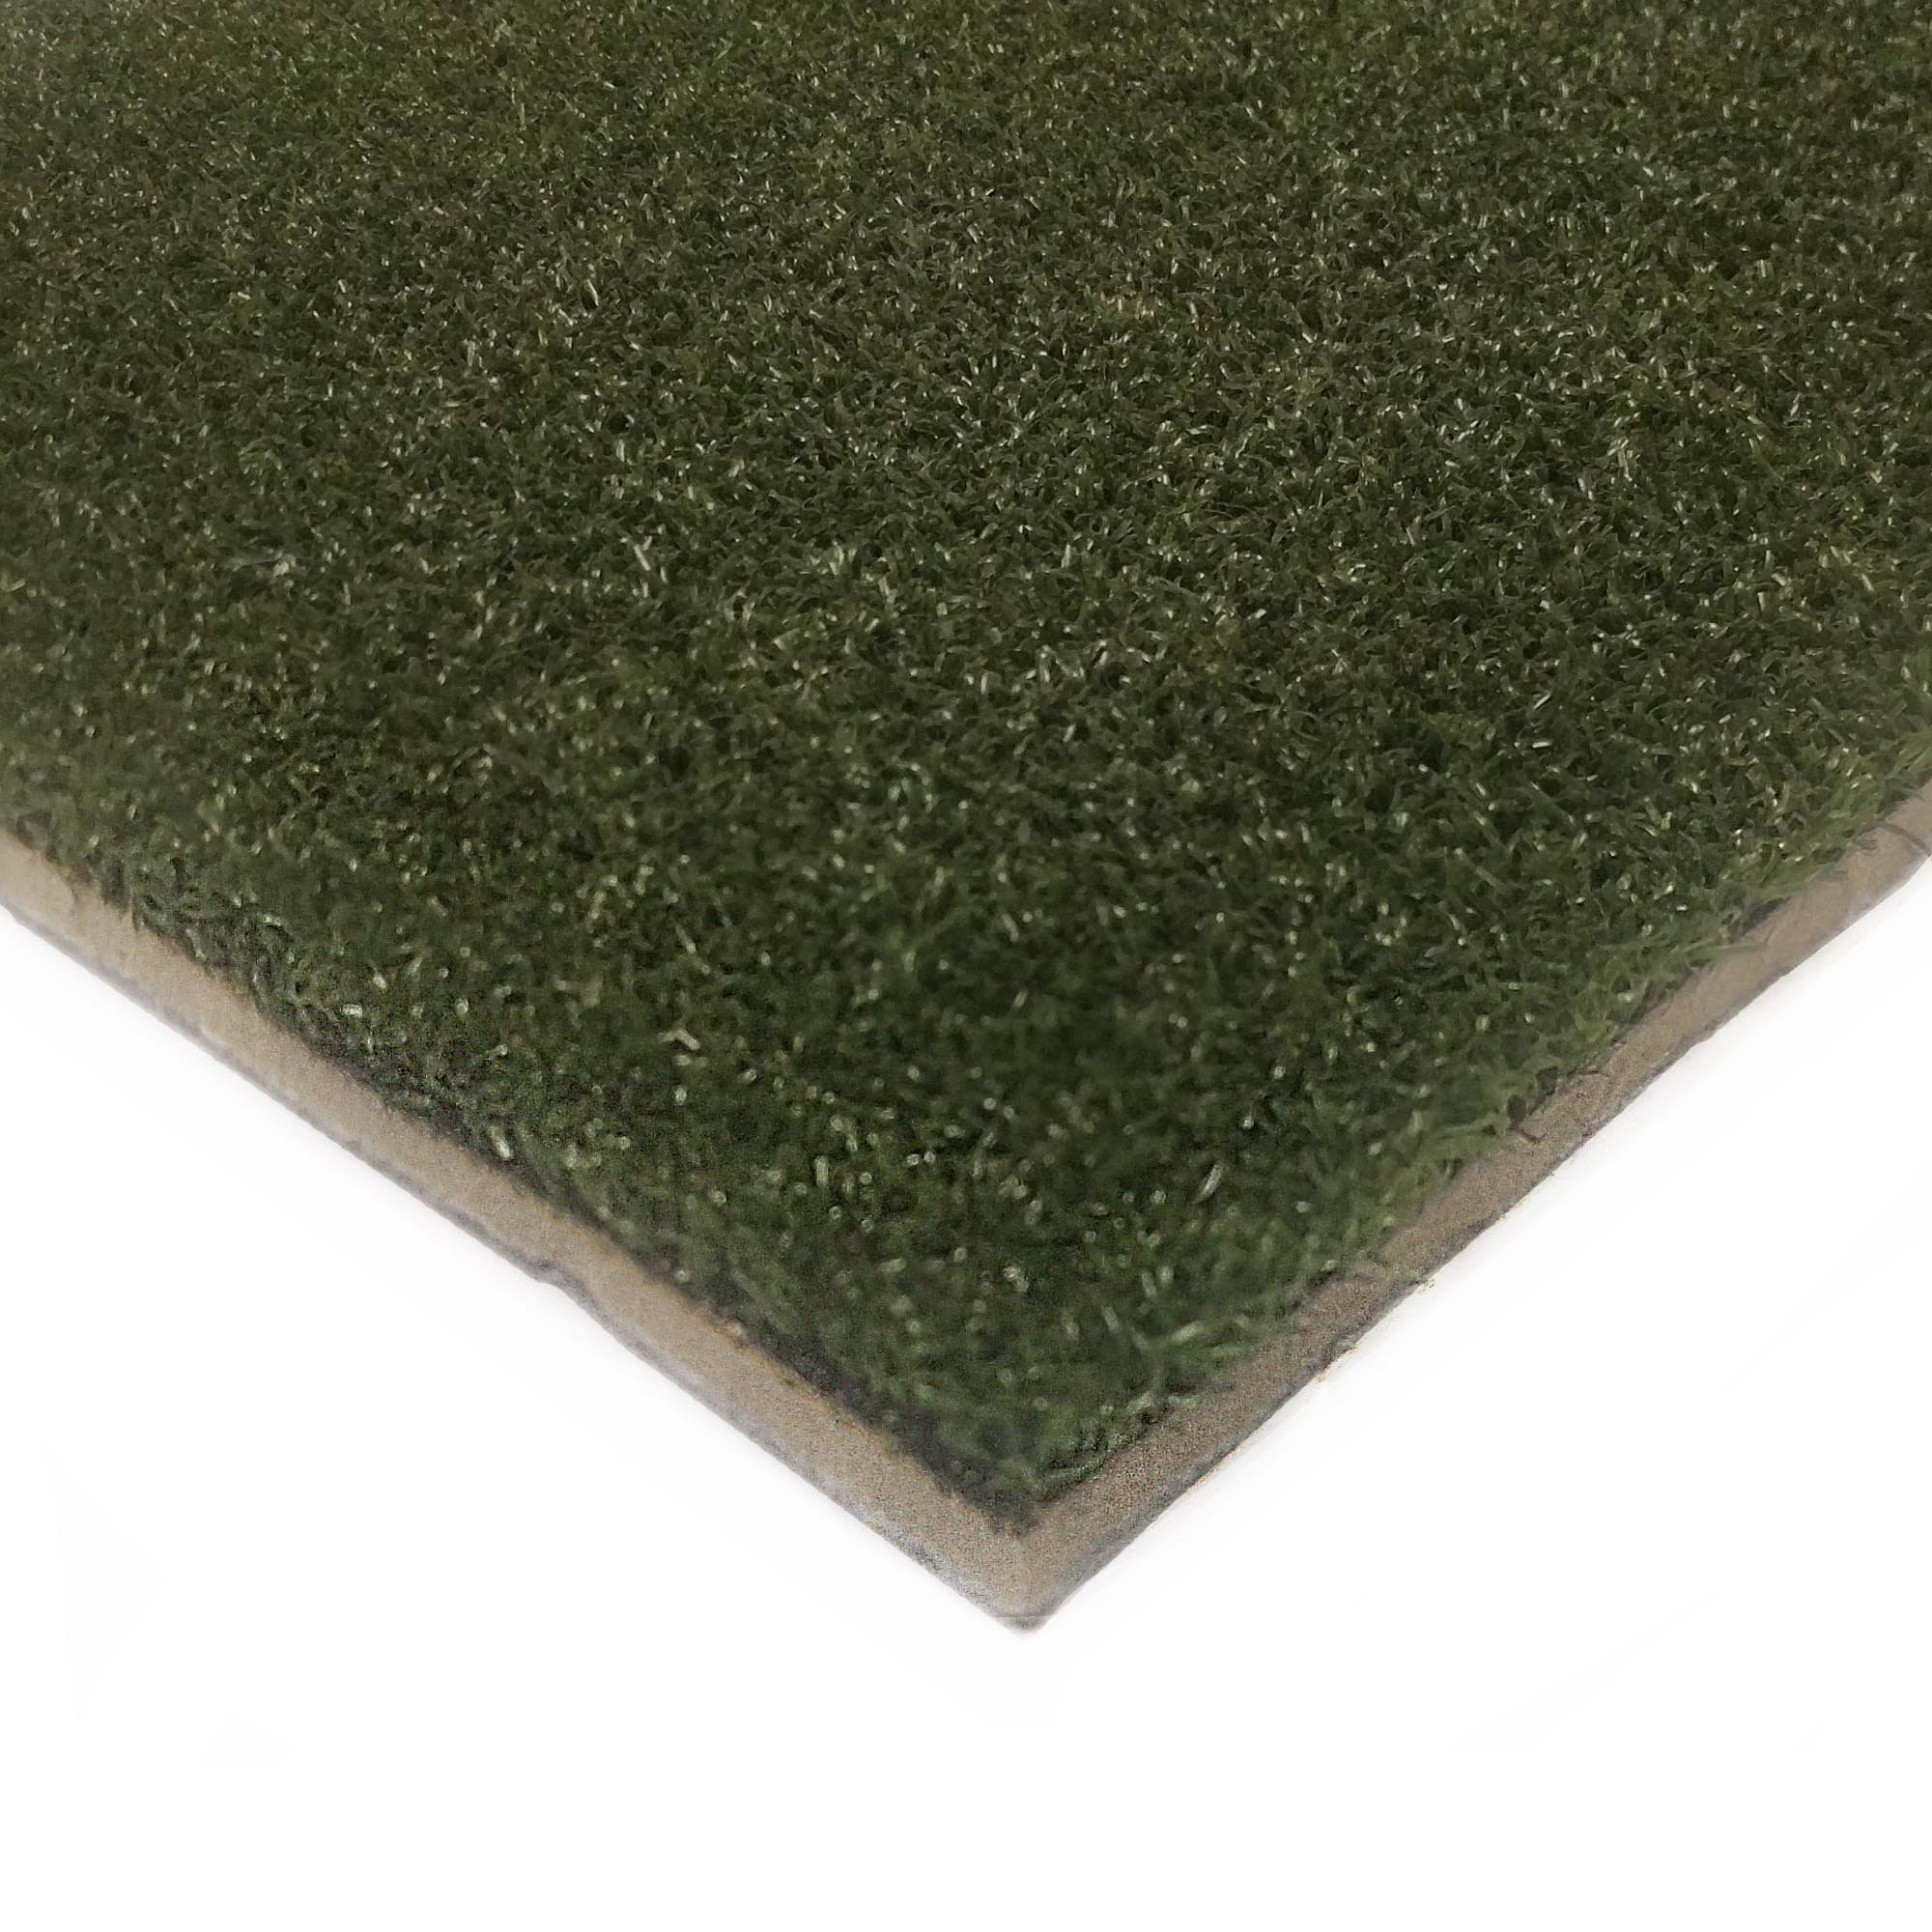 JFN Practice Putting Green Turf 1' x 3'